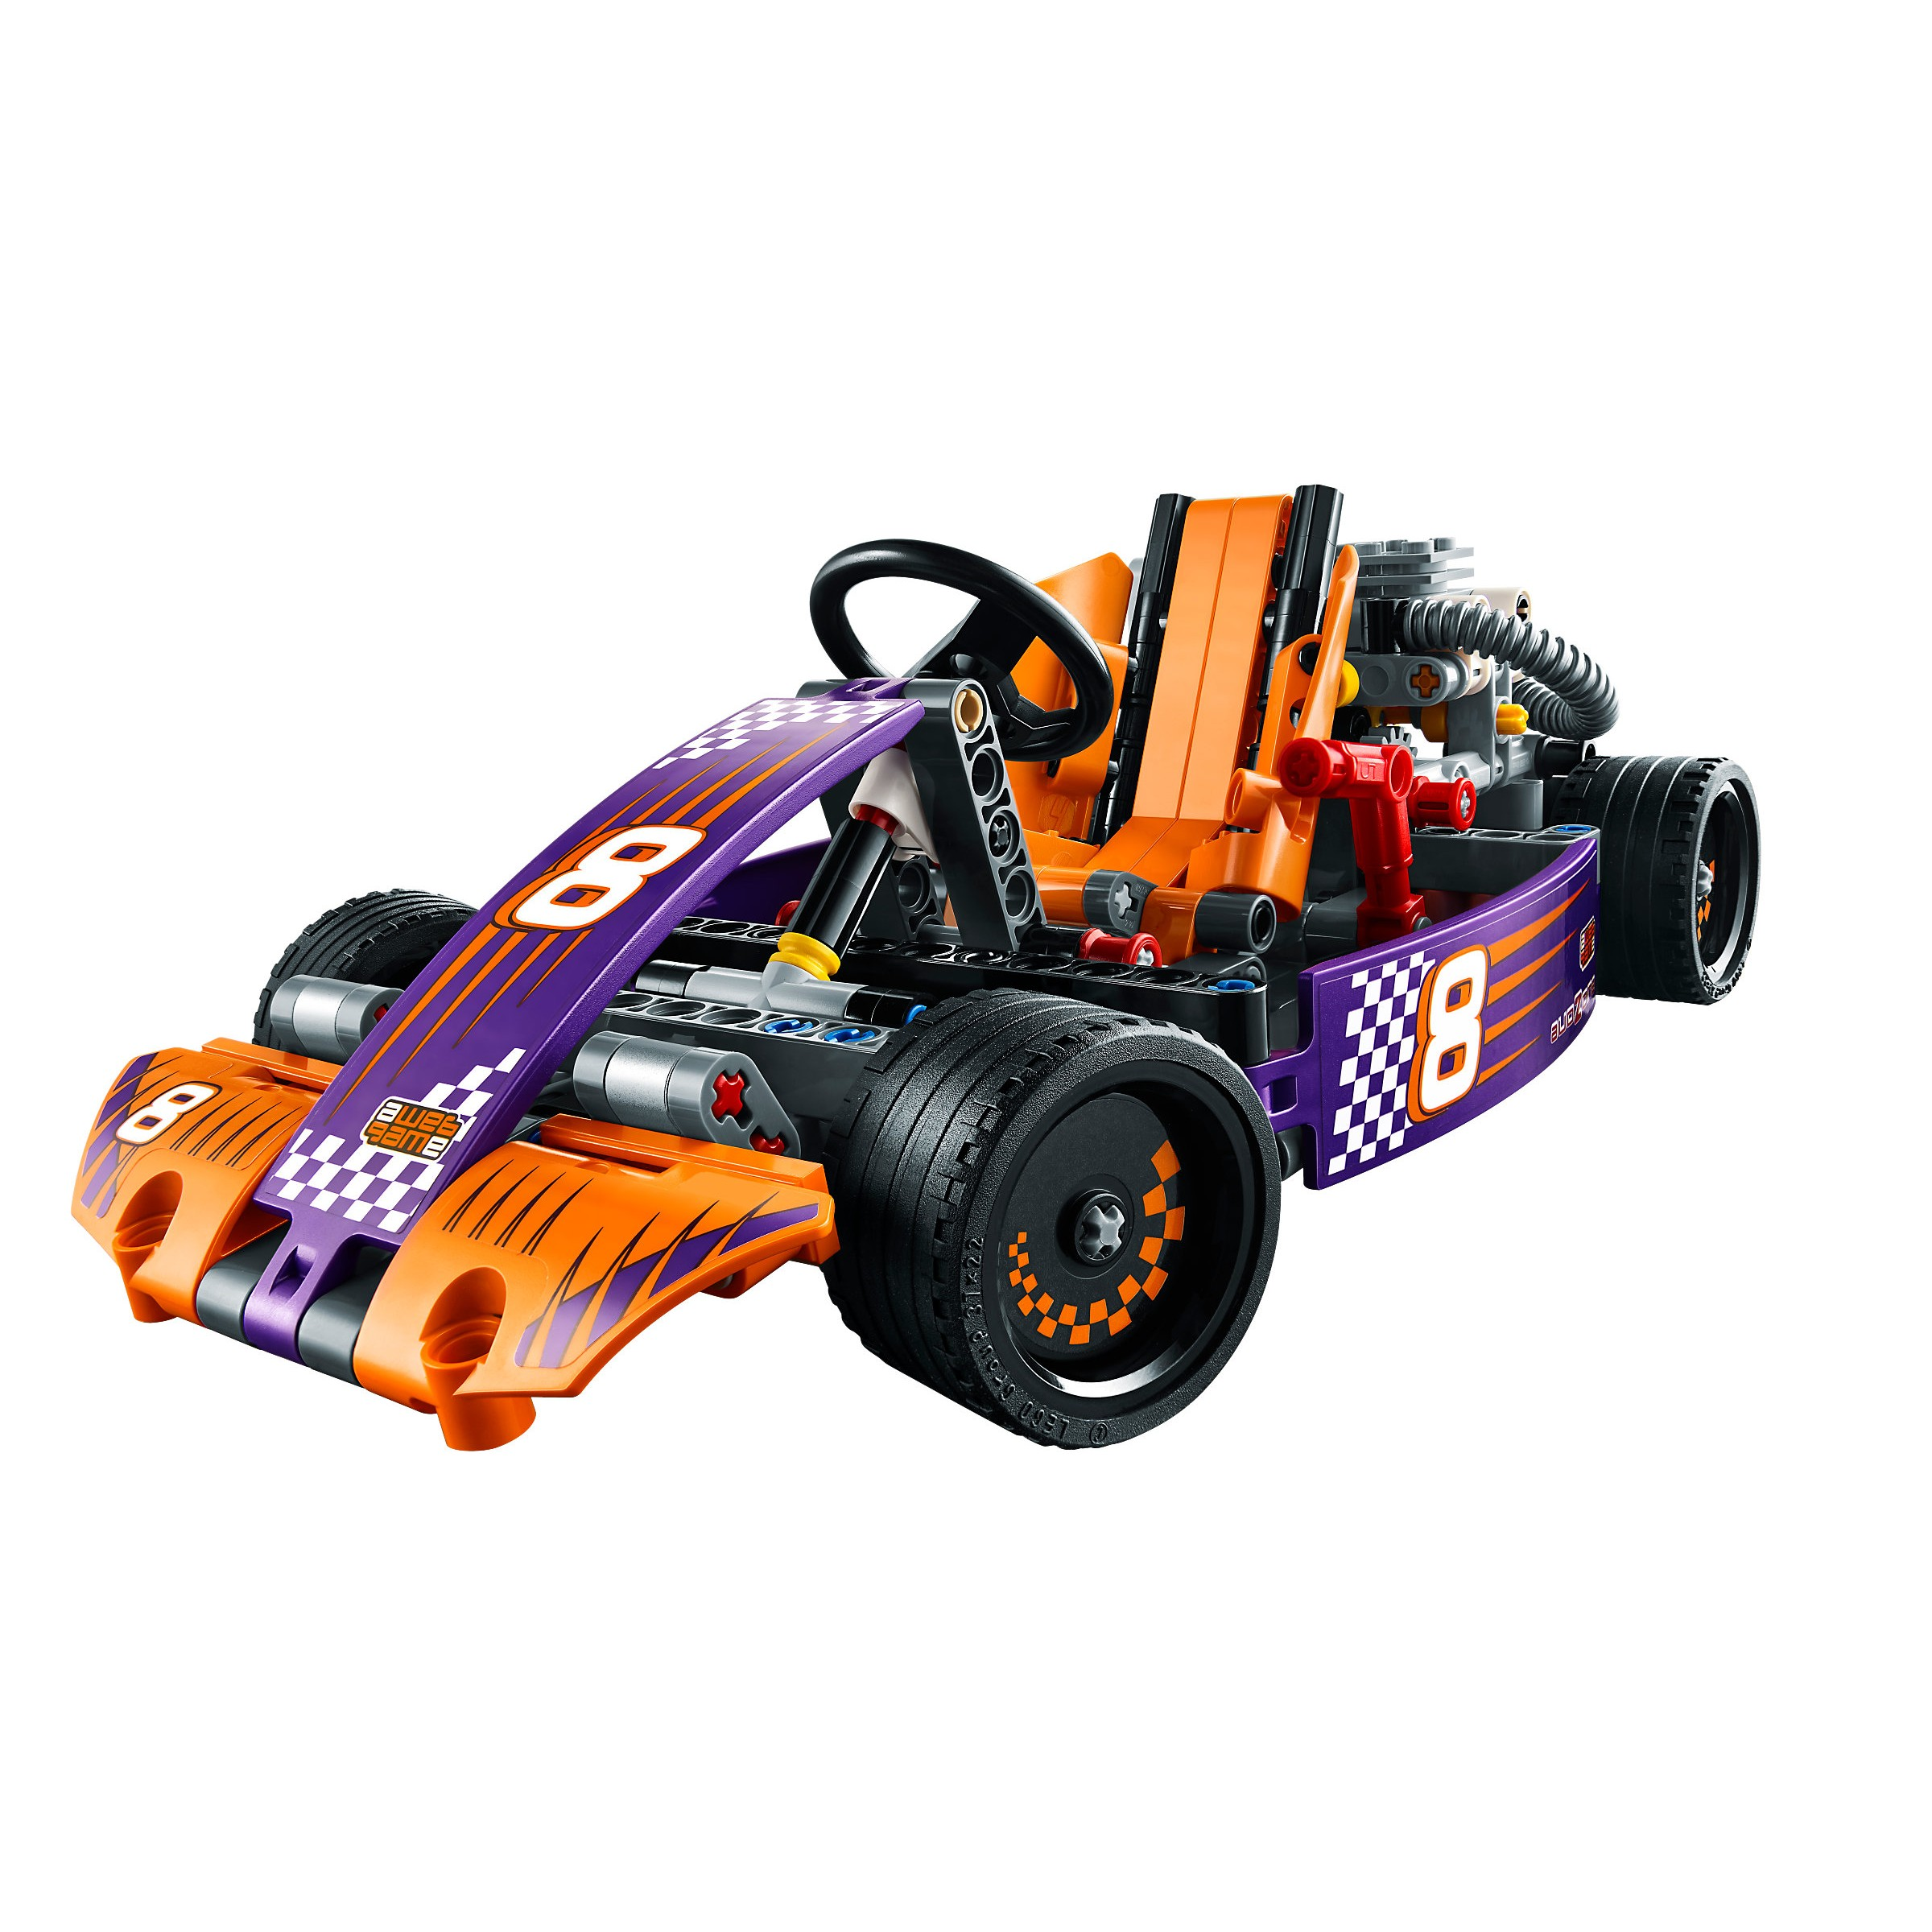 lego 42048 technic race kart at hobby warehouse. Black Bedroom Furniture Sets. Home Design Ideas